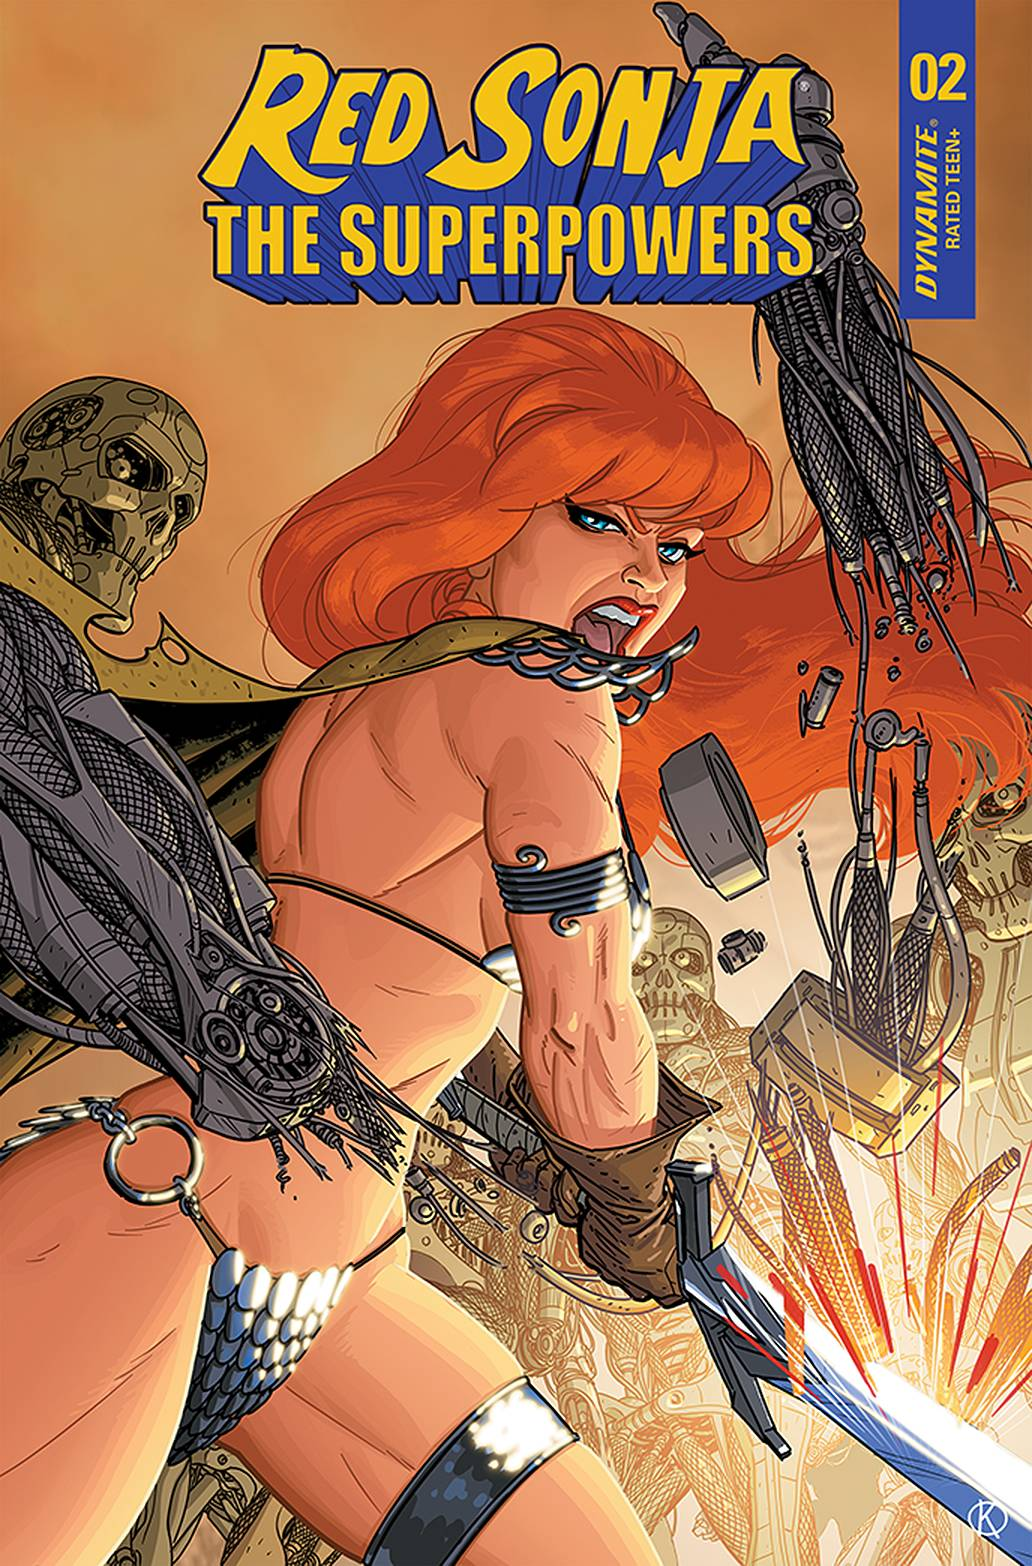 RED SONJA THE SUPERPOWERS #2 15 COPY KANO INCV